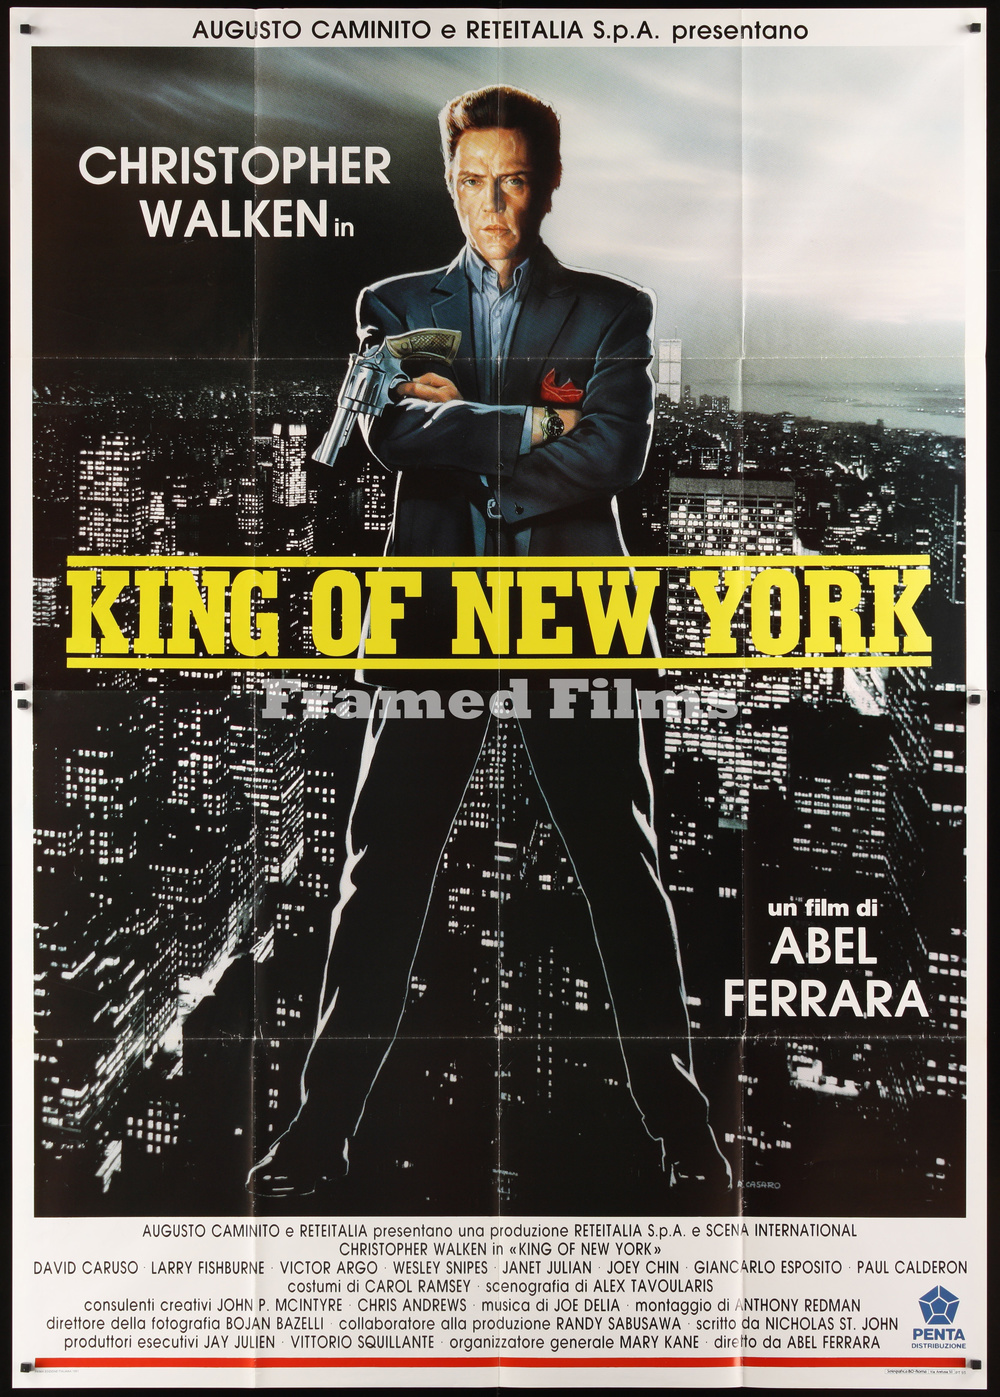 italian_2p_king_of_new_york_MF01006_L.jpg